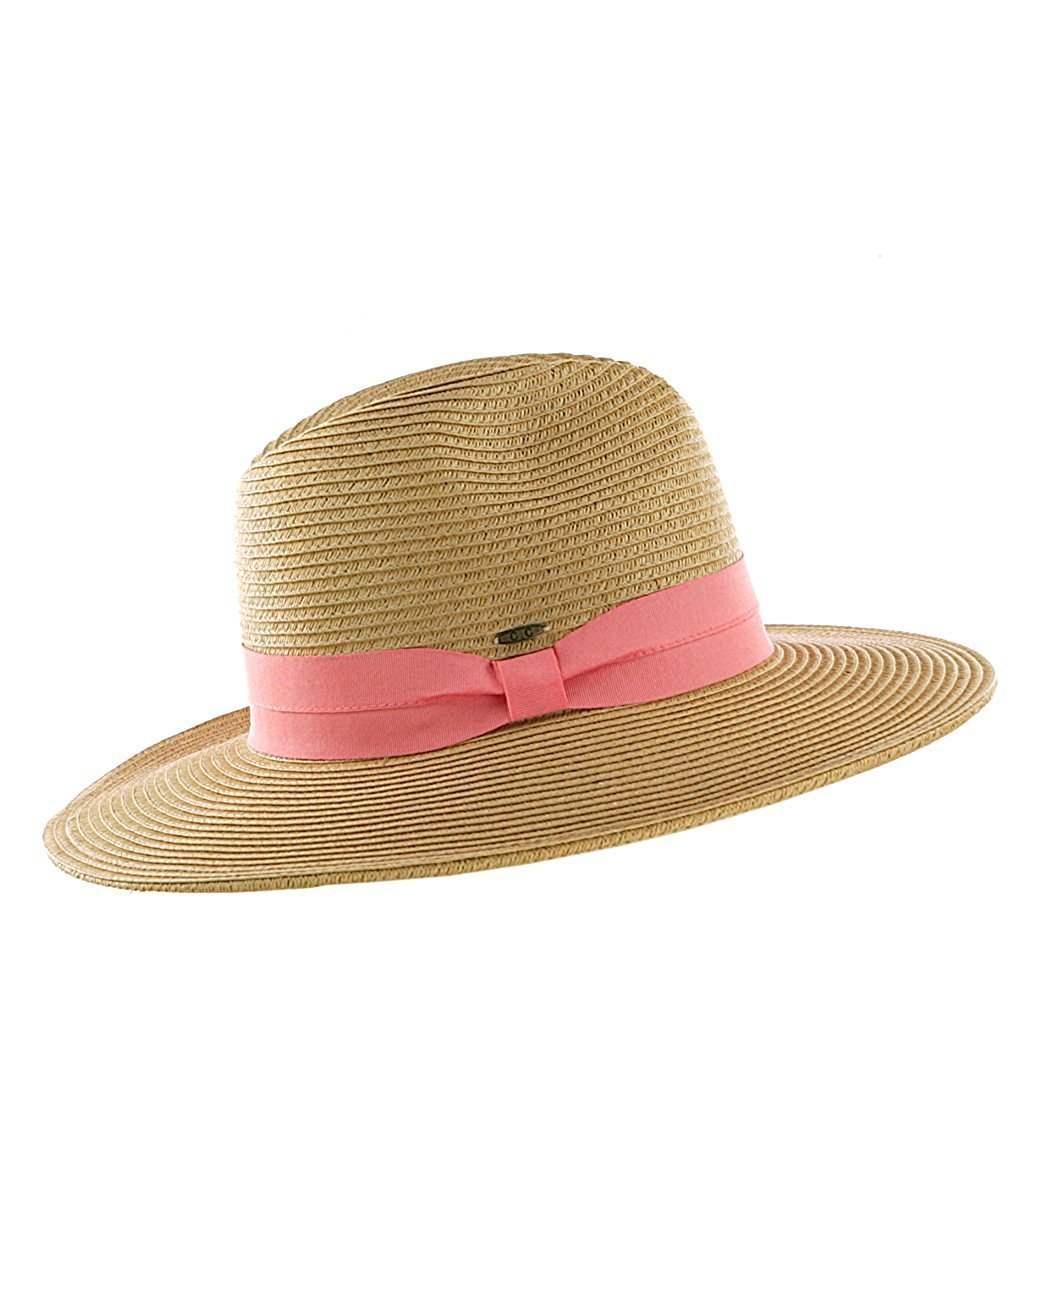 BABY-QQ New Design Lightweight Solid Color Band Braided Panama Fedora Sun Hat Dk Nat/Coral Dark Natural/Coral